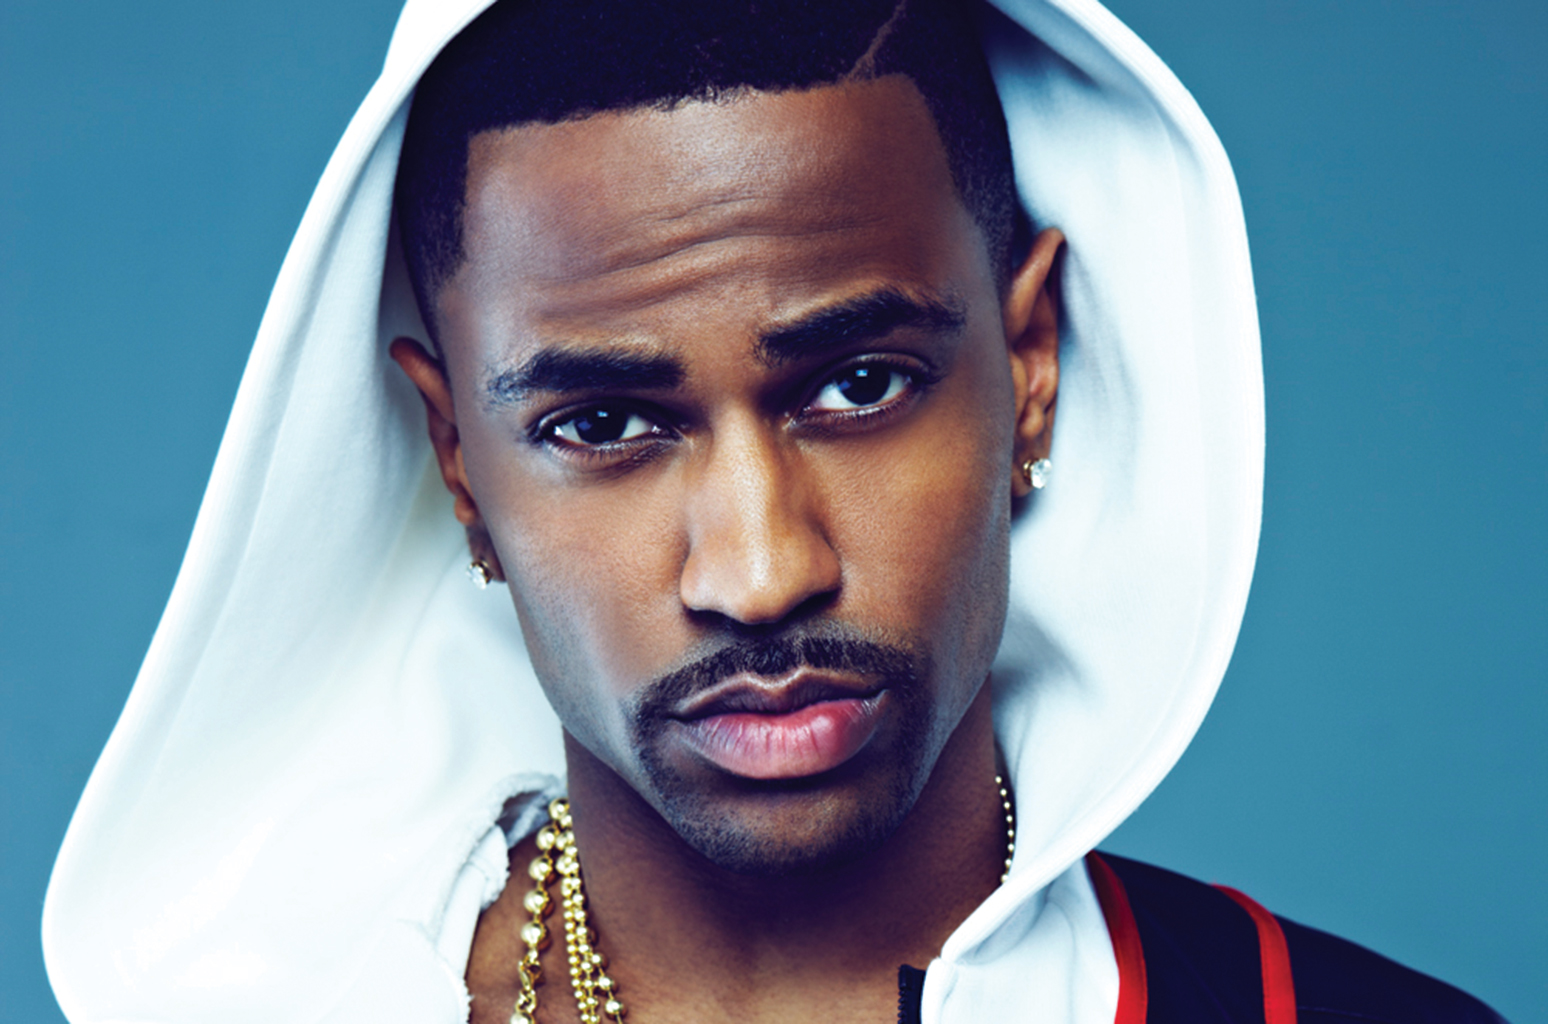 Fan slaps Big Sean in a meet and greet session